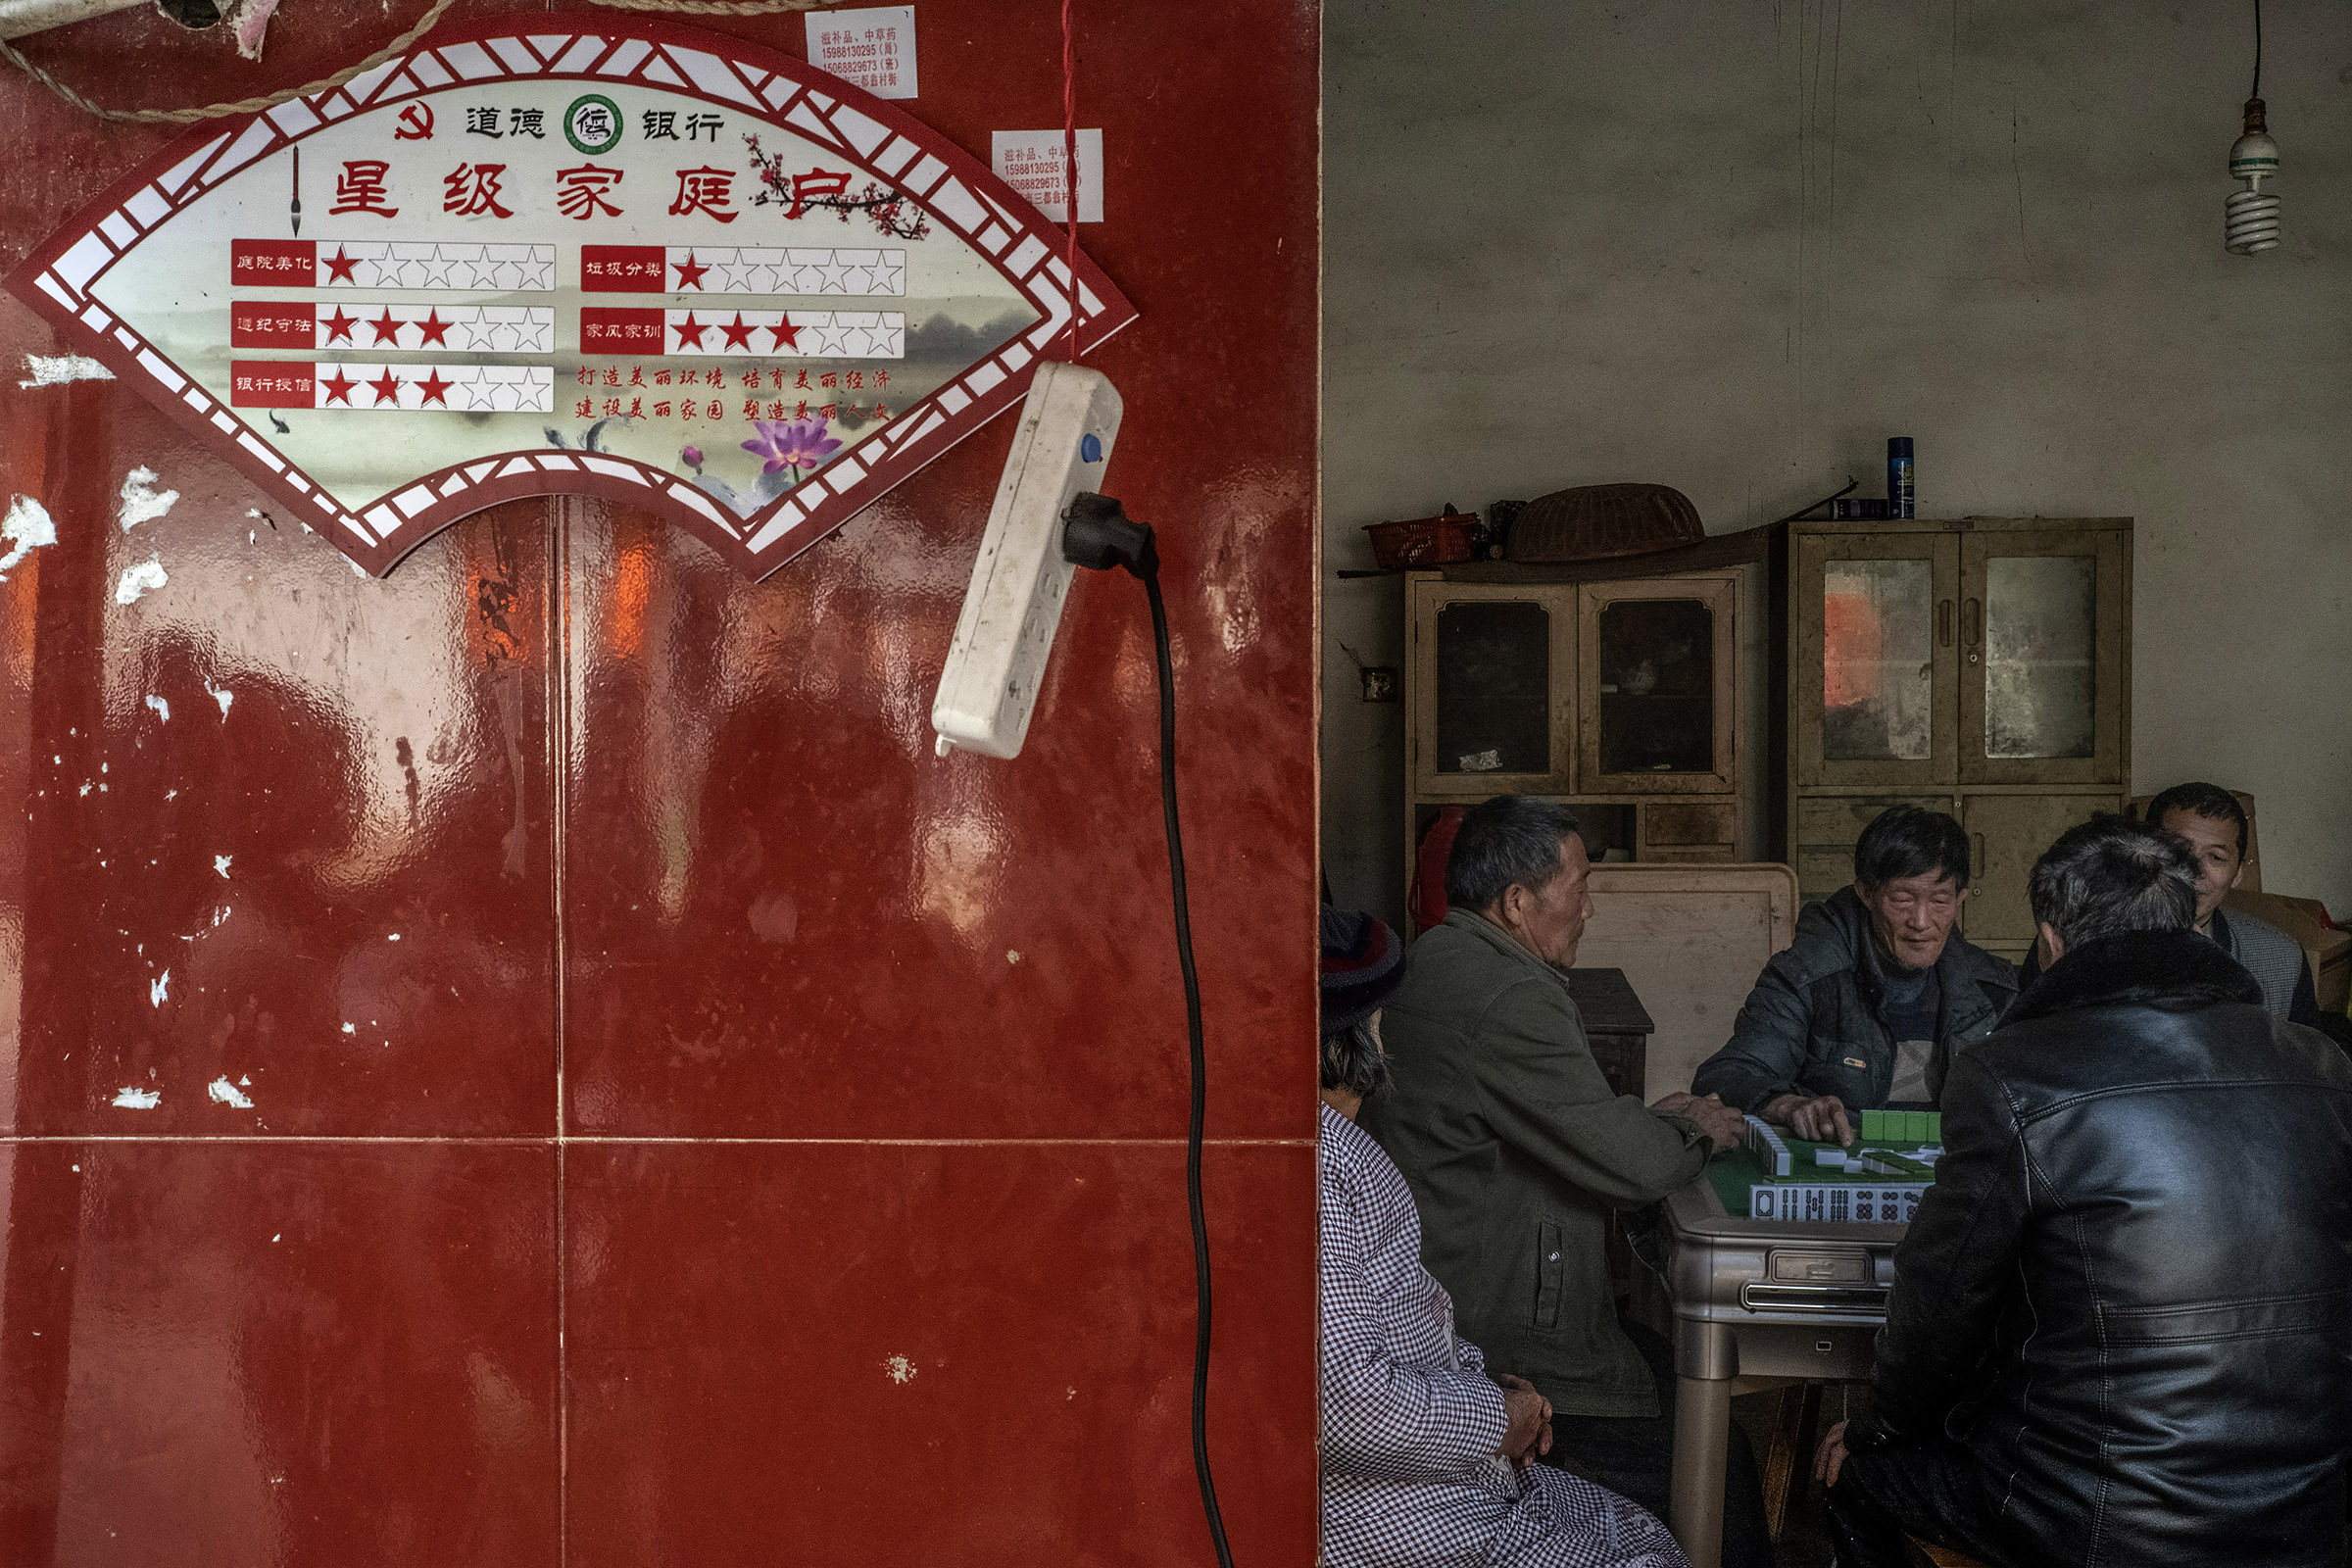 In Yangqiao (Zhejiang) locals are playing Mah-Jong in a home where the household social credit score is displayed on the wall. The social credit system implemented in this village since 2018 is based on five criteria : cleanness and tidiness of courtyard, Observance of laws and regulations, bank credit, recycling, family values. Locals describe the system as useless and of no effect on their daily behaviour (which includes for many, gambling). However, this local experience has been hailed as a success by local and national State media and will be extended to other villages and towns in the region.     Chinese authorities have announced their wish to have a nationwide social credit system in place by 2020. However the details and feasibility of such a system are yet unclear.